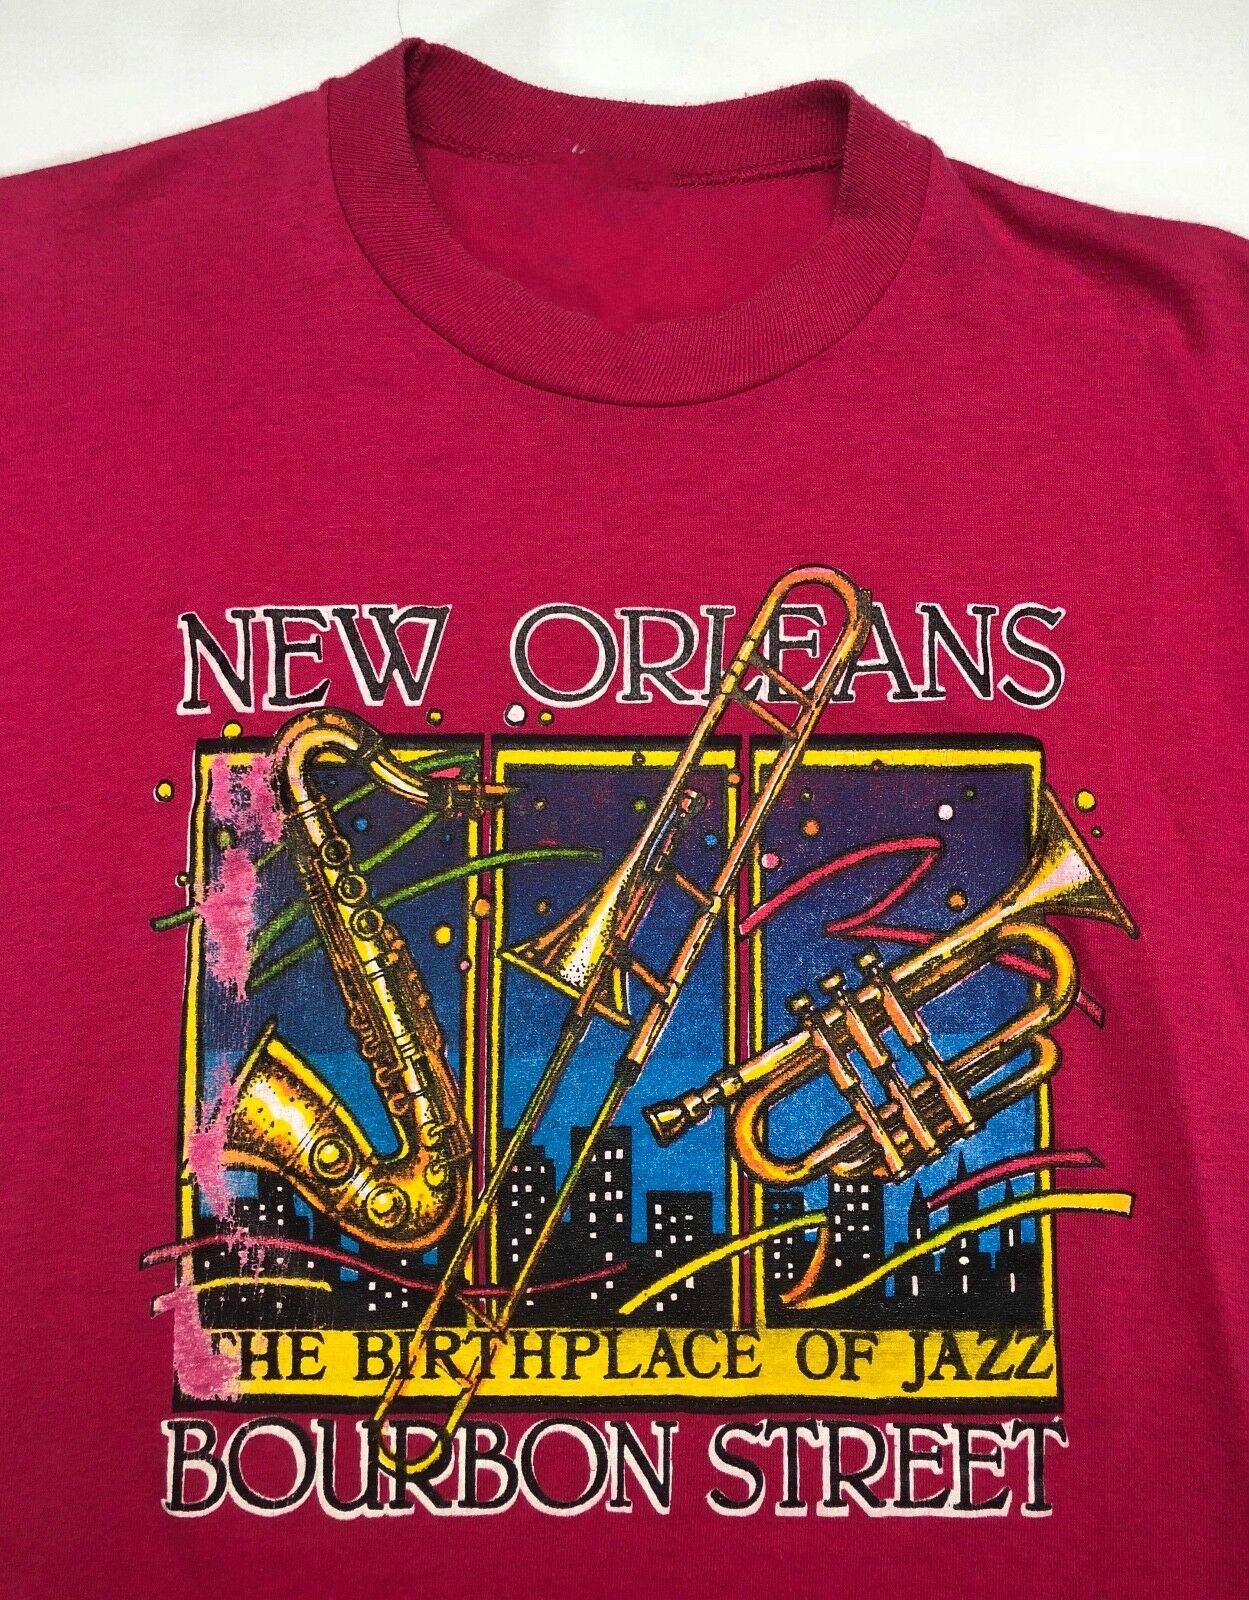 Vintage Mens 80S New Orleans Bourbon Street Birthplace Of Jazz Pink T-Shirt Unisex Size S-3Xl image